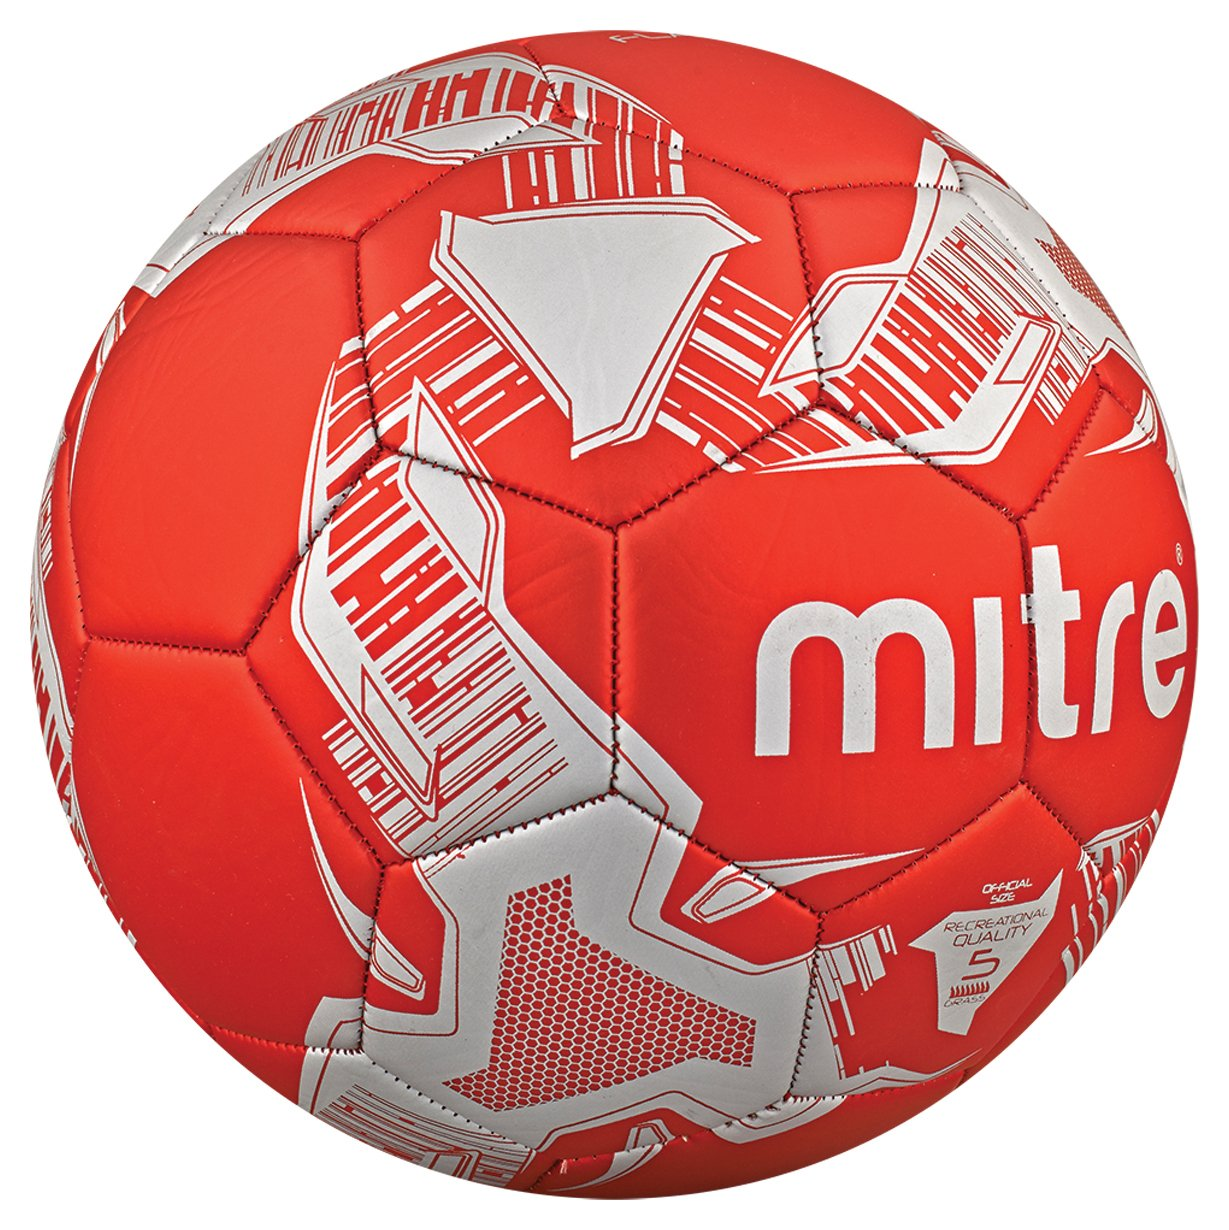 Mitre Flare Football - Red